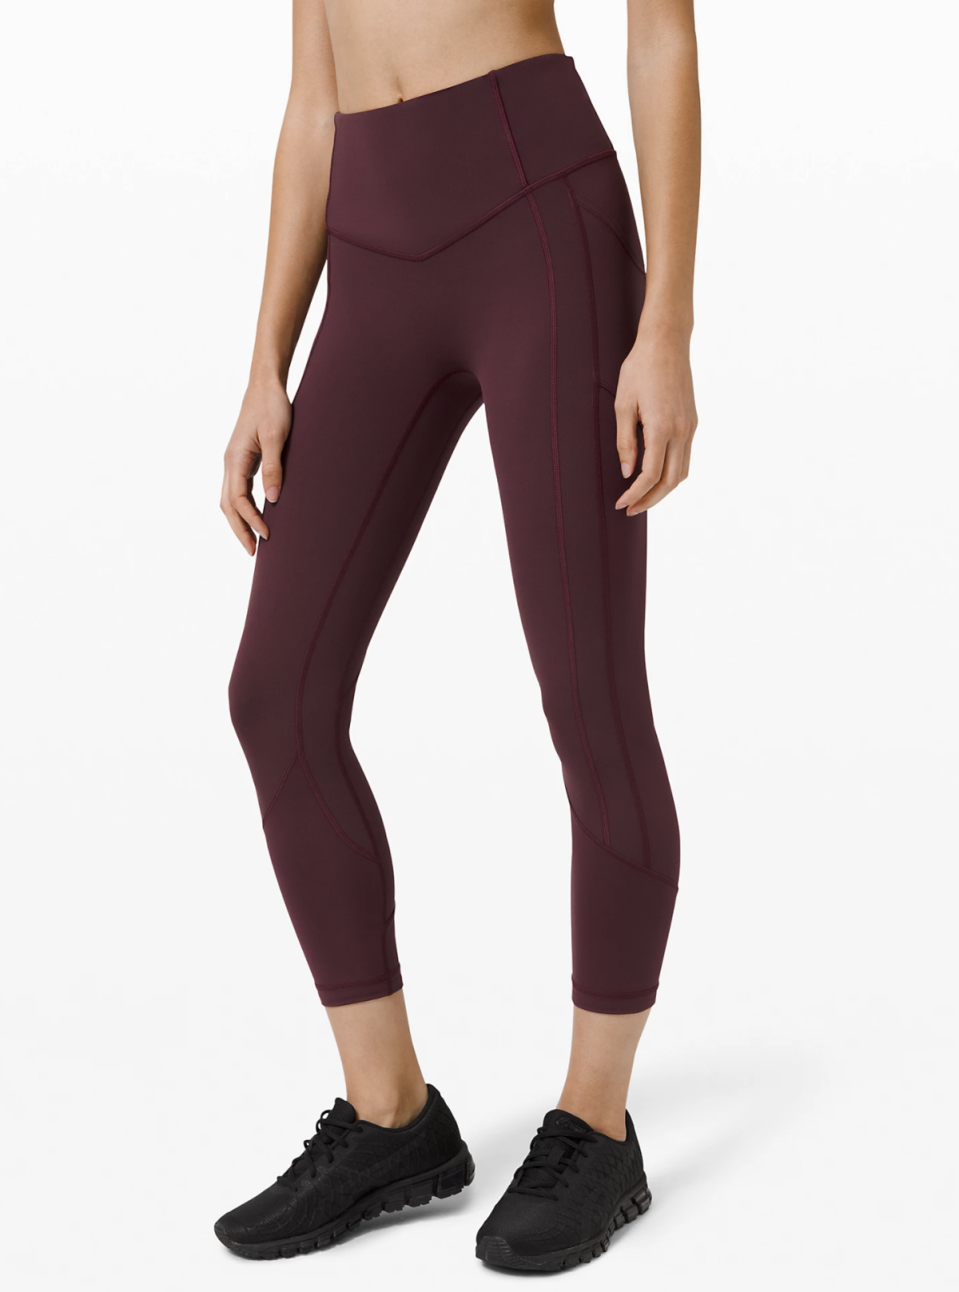 All The Right Places Crop in Cassis. Lululemon, $128.